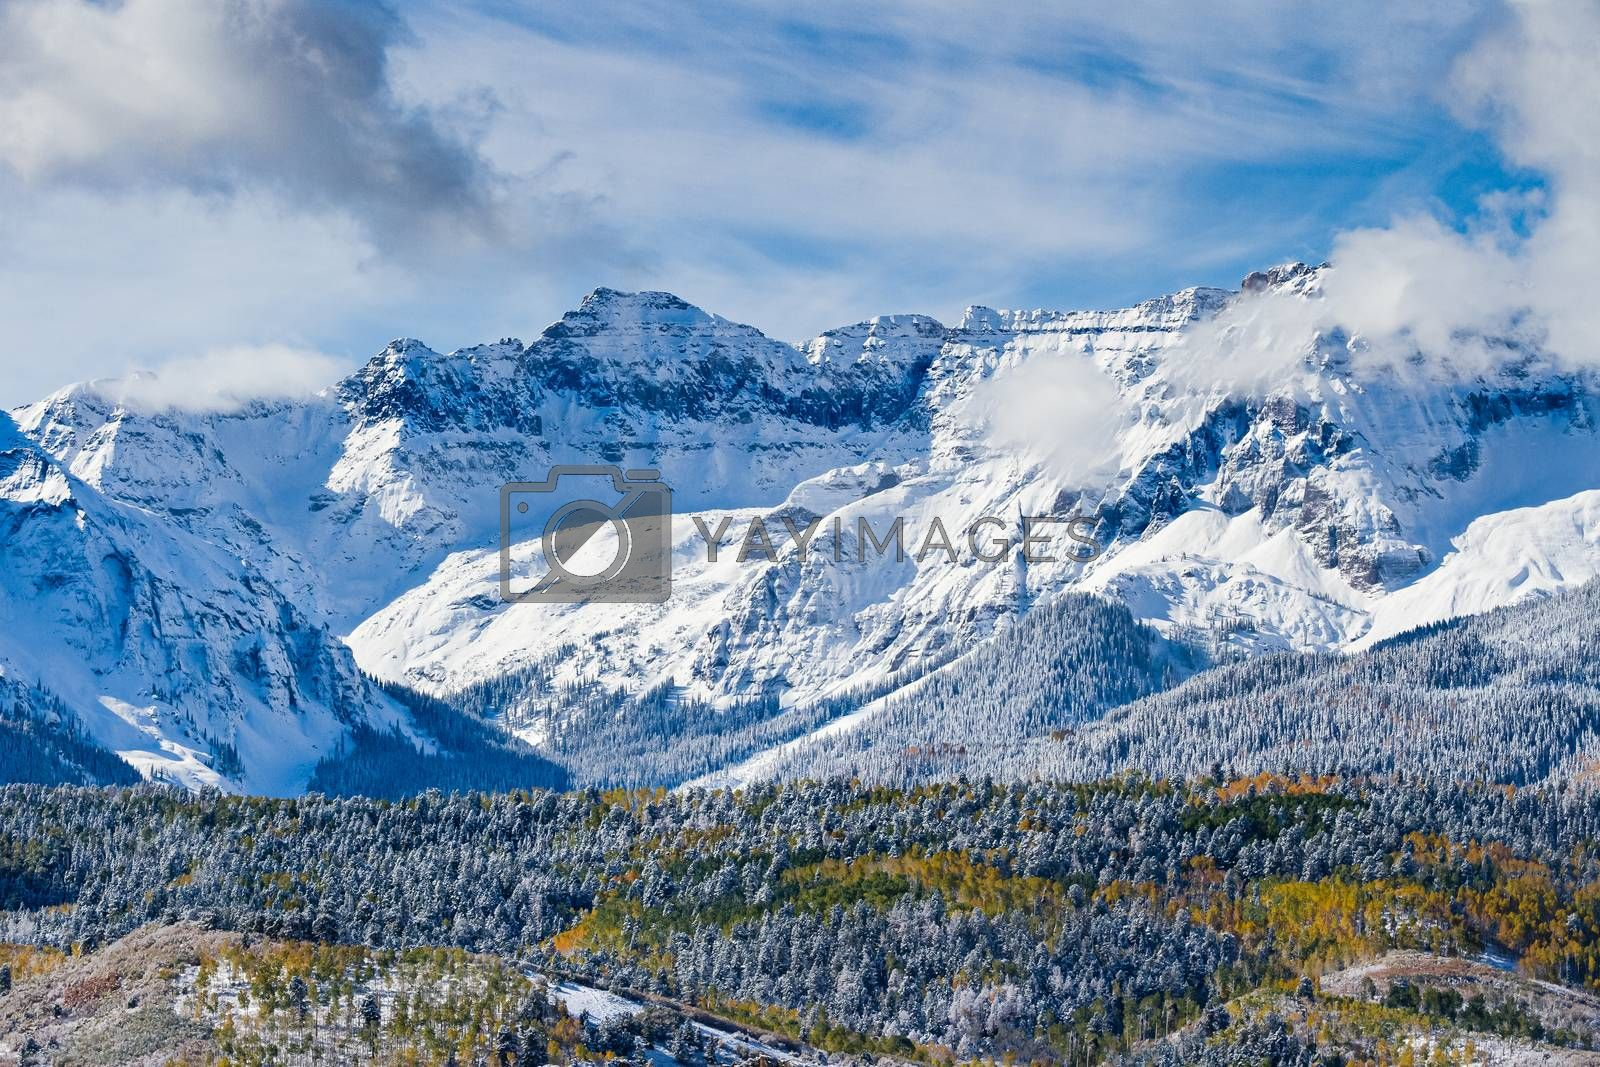 The San Juan Mountain Range - Autumn Scenery in the Beautiful Rocky Mountains of Colorado